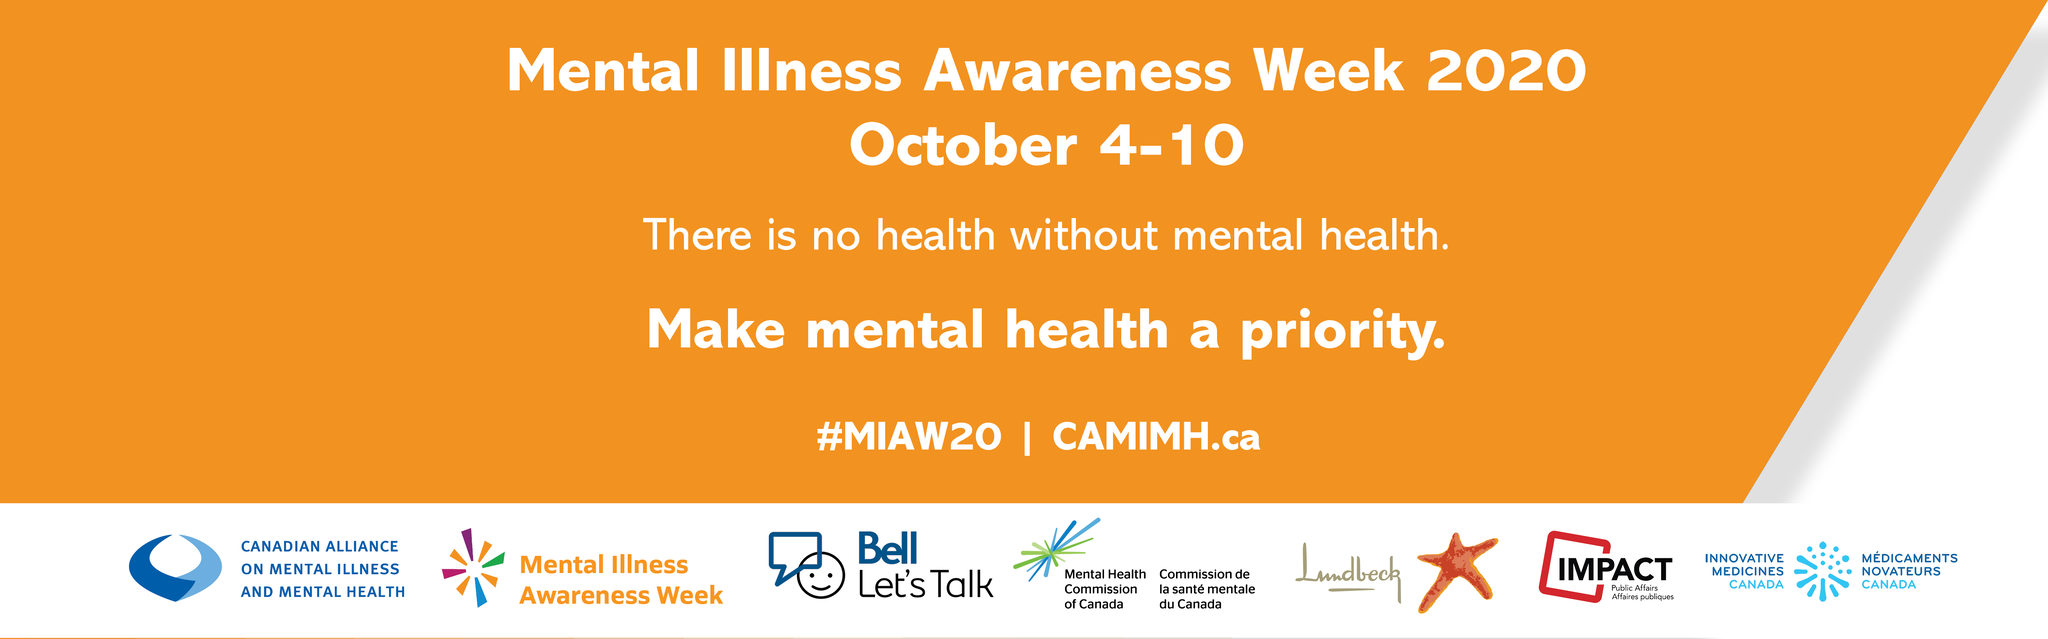 #MIAW20: There is no health without mental health